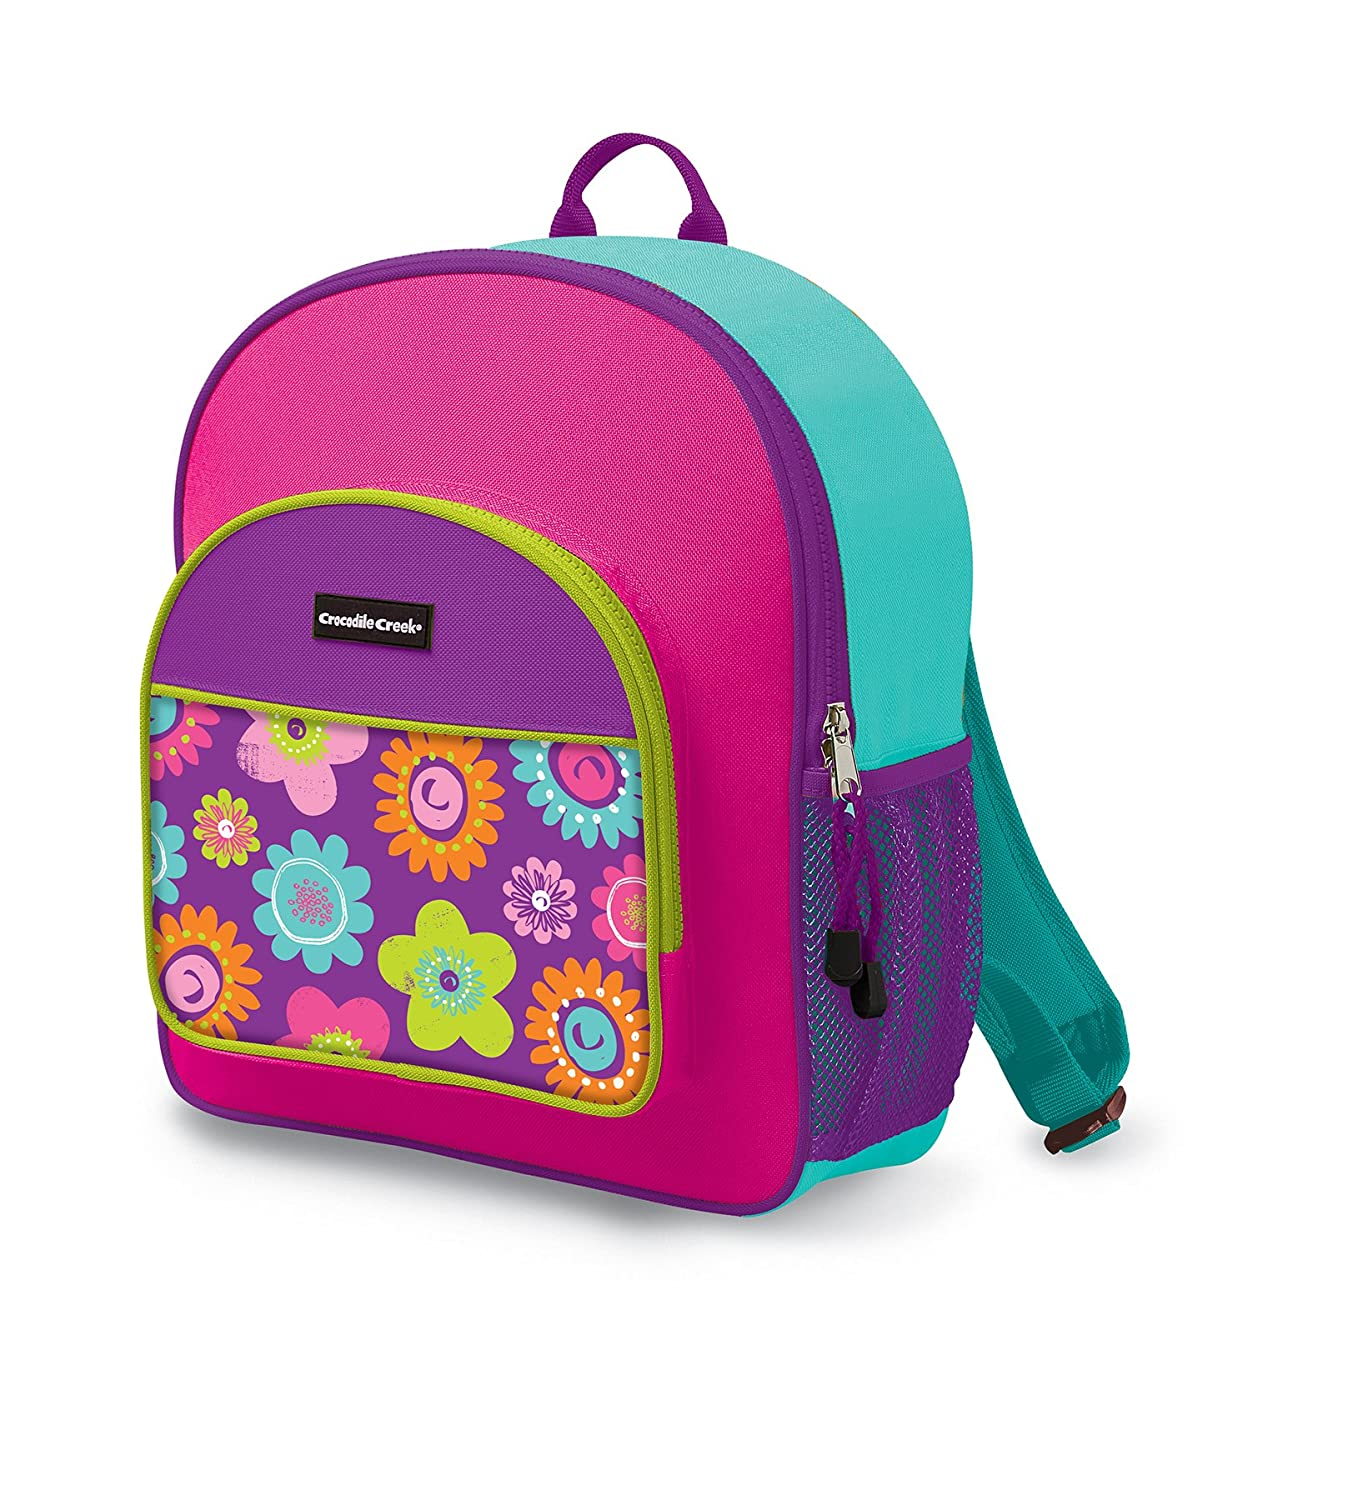 Crocodile Creek Kids Backpack, in Three Flowers